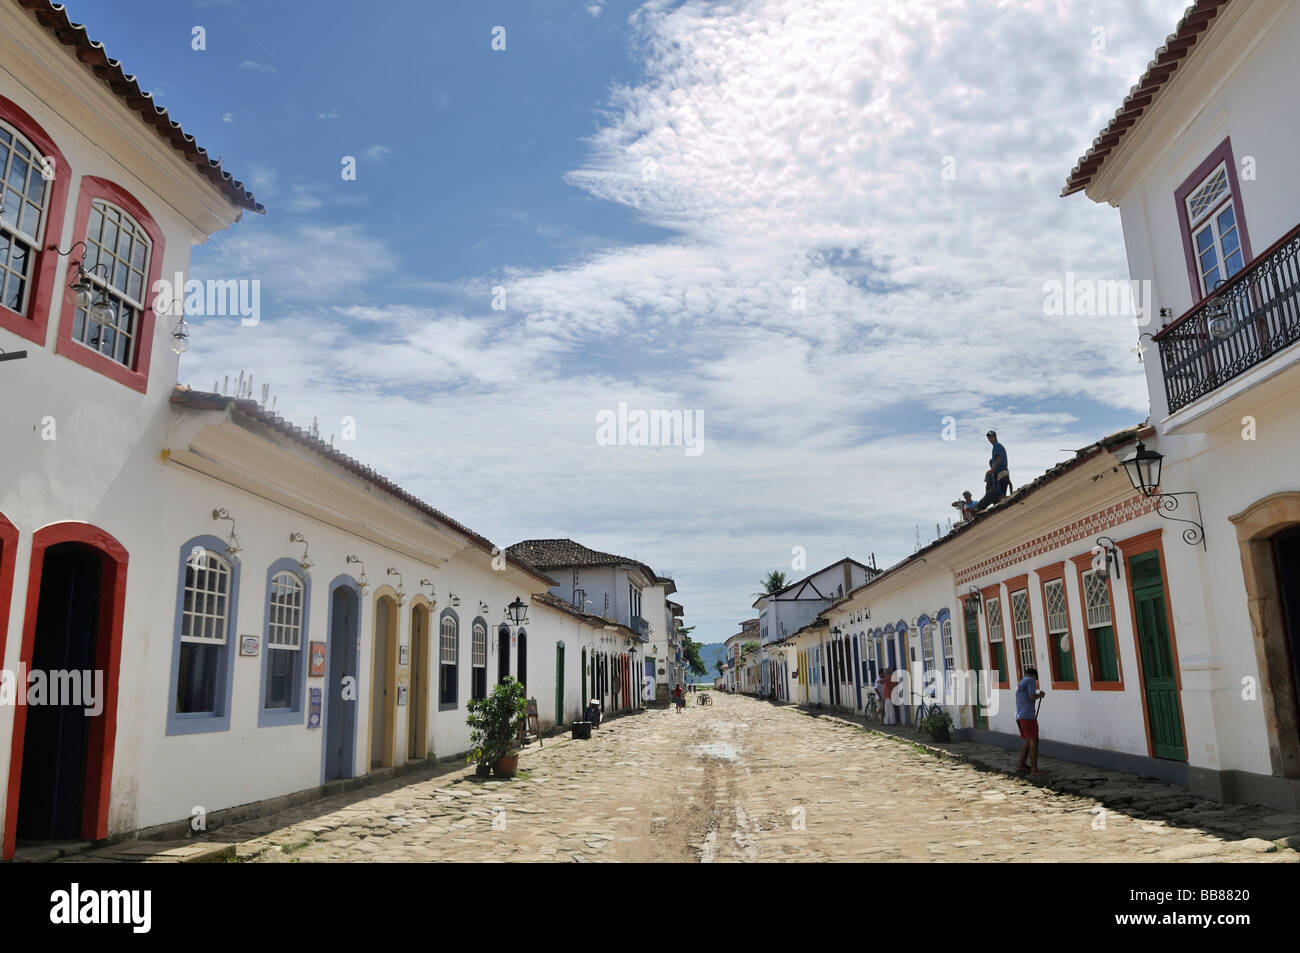 Street in the baroque historic city of Paraty, Parati, Rio de Janeiro, Brazil, South America - Stock Image